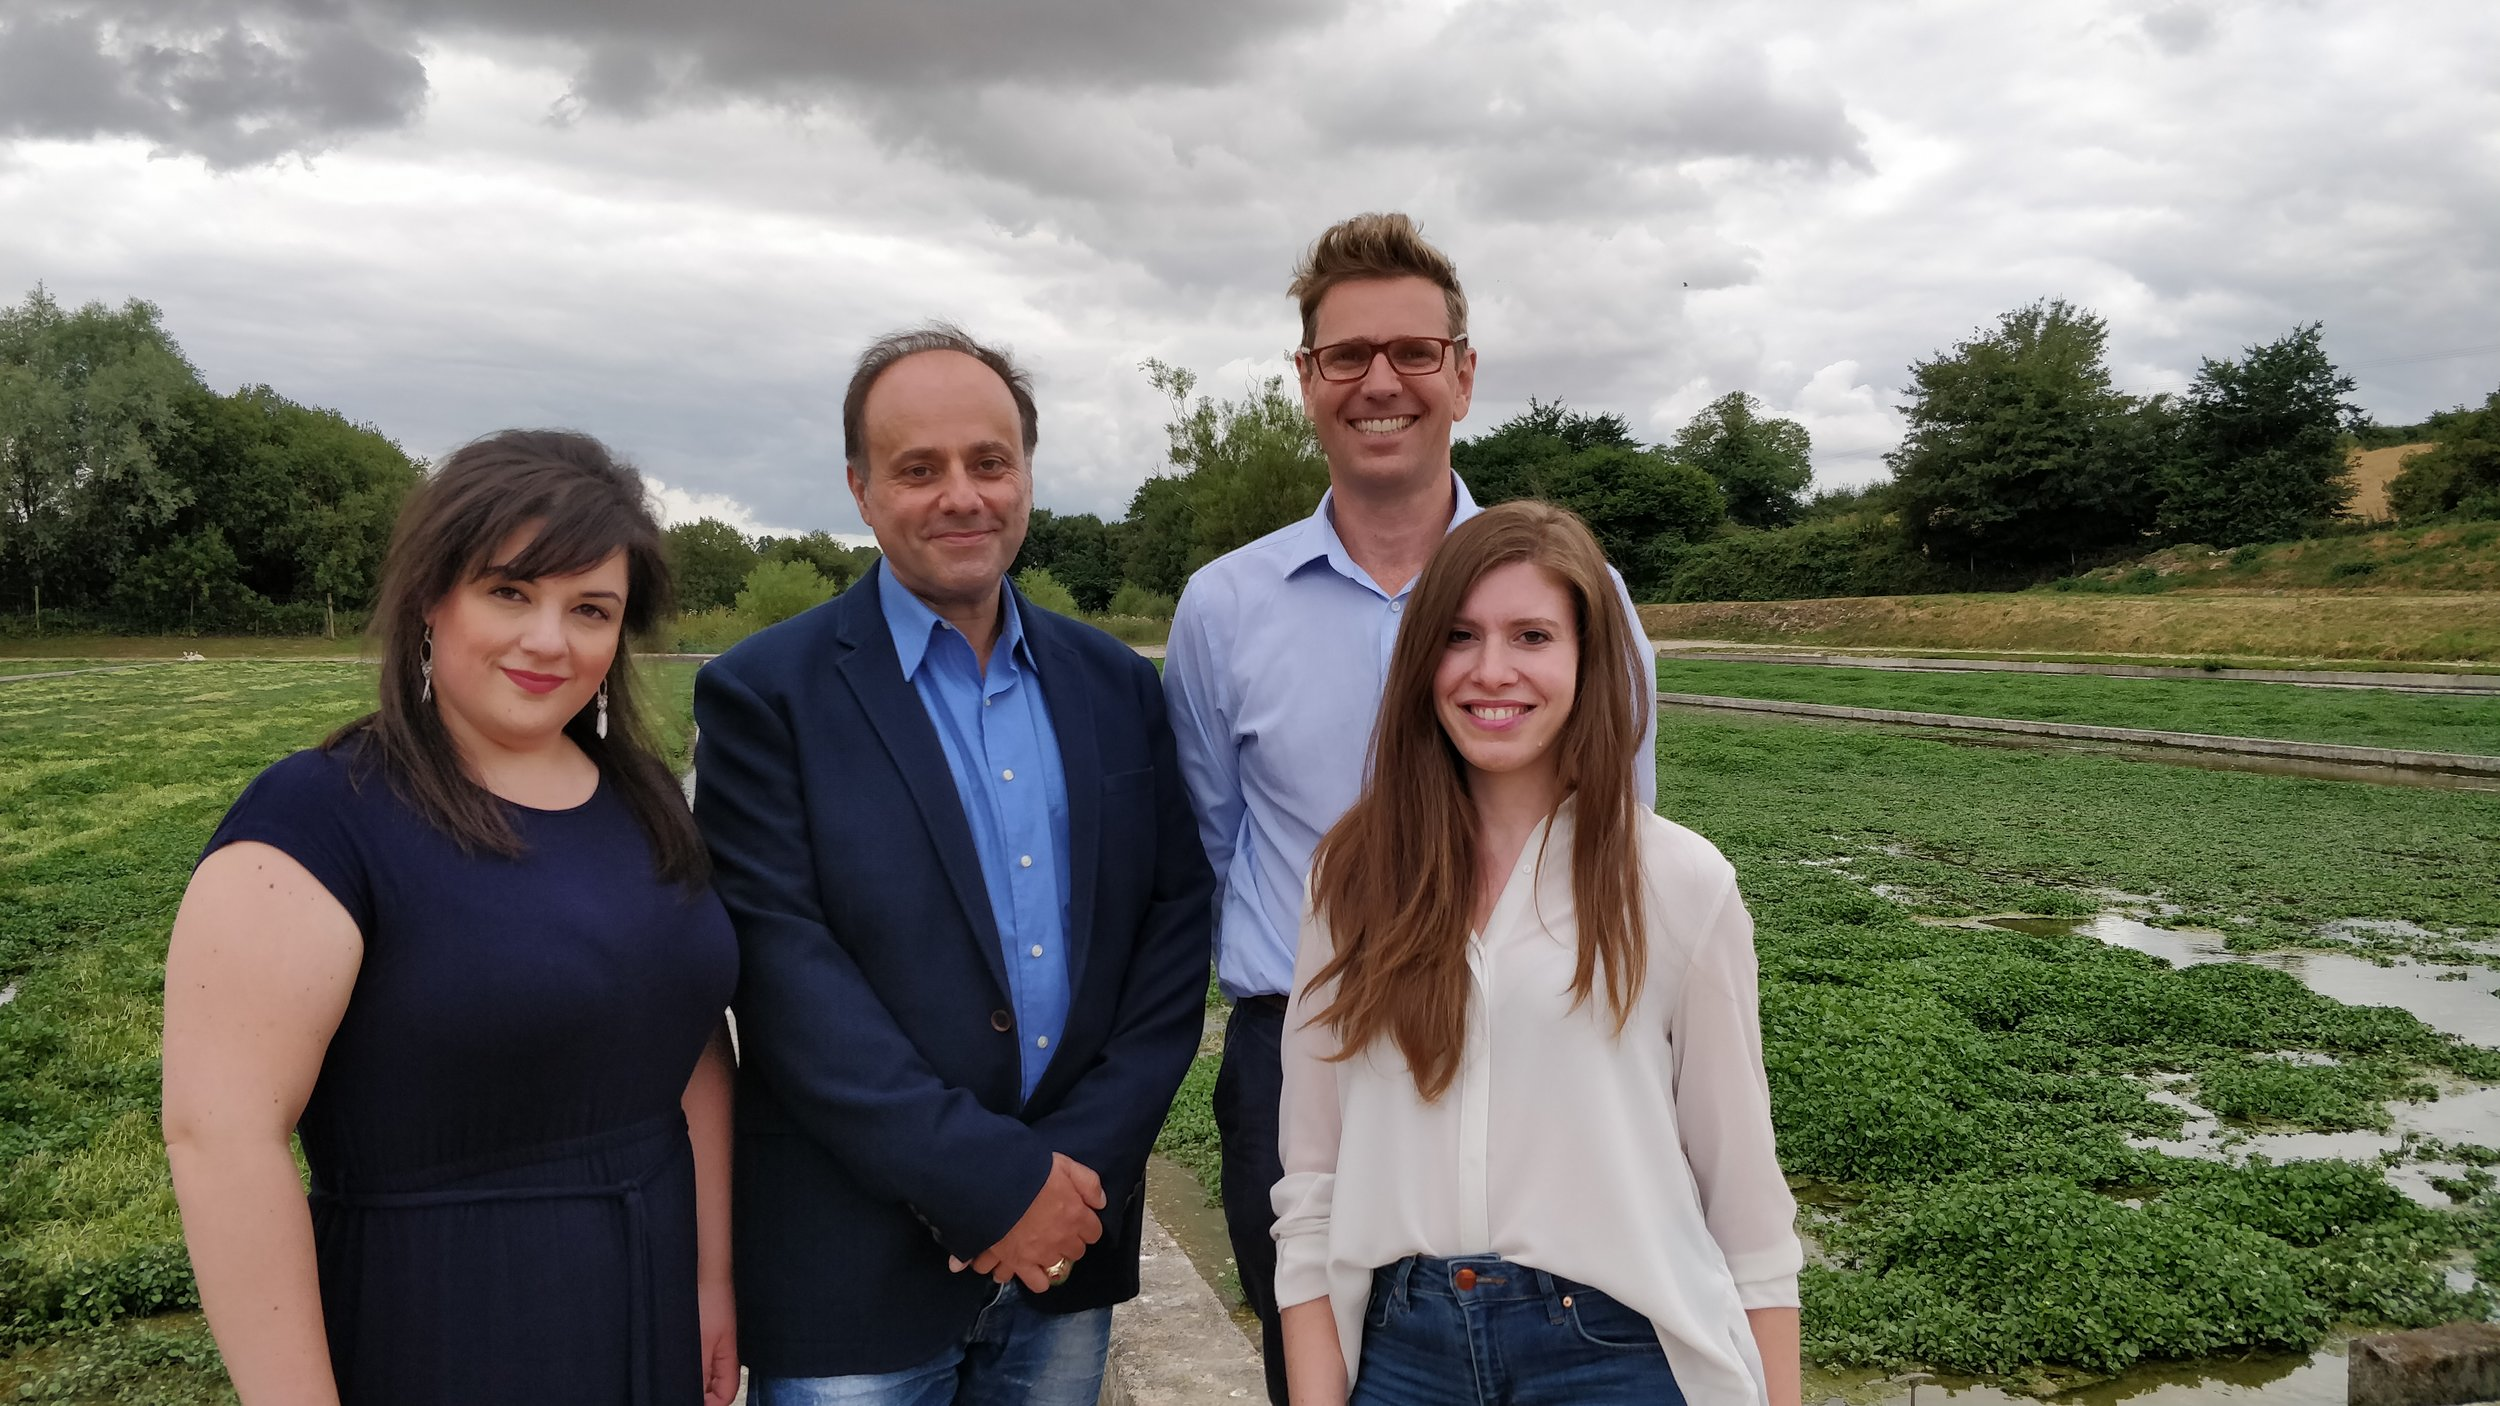 Professor  Professor Mihalis Panagiotidis in Northumbria University  during a visit to Manor Farm, New Alresford in July 2018. Left to right PHD student Melina Mitsiogianni, Professor Mihalis Panagiotidis, Tom Amery, MD of The Watercress Company and PHD student Vasiliki Lolou